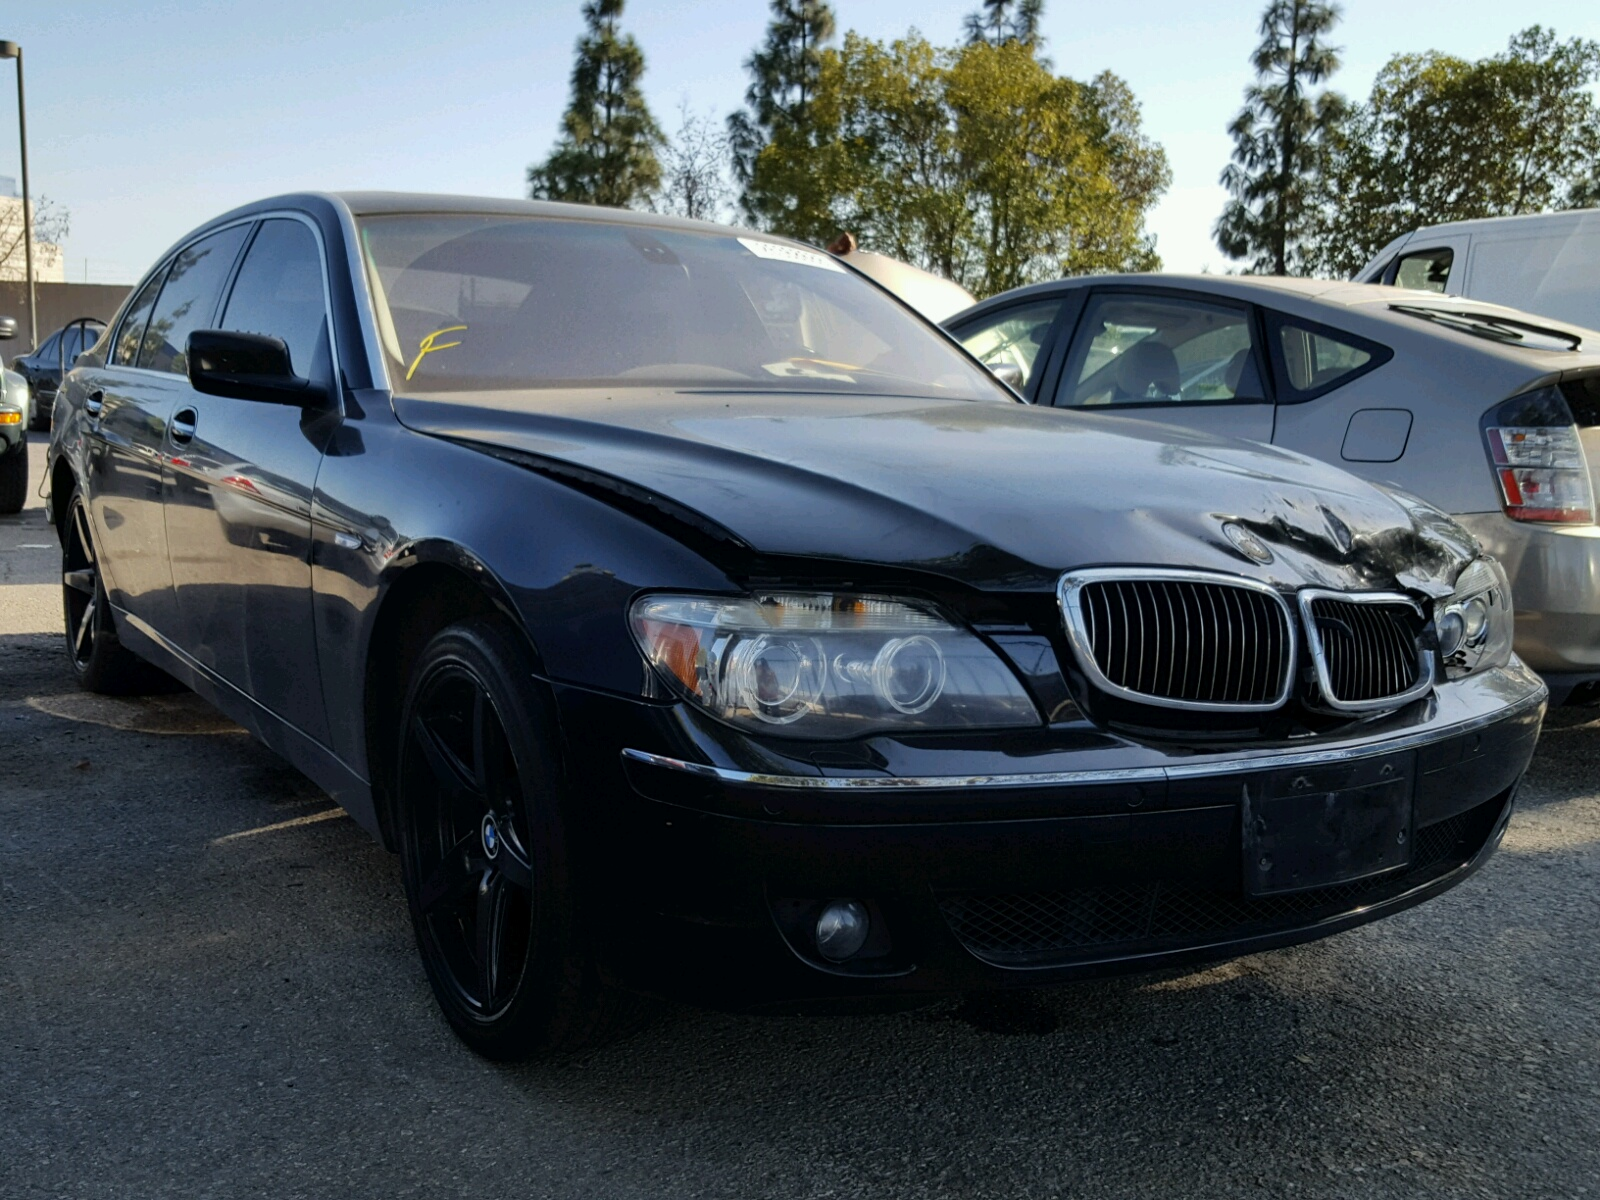 Auto Auction Ended On VIN WBSBRPK BMW M In OK TULSA - 2002 bmw 750